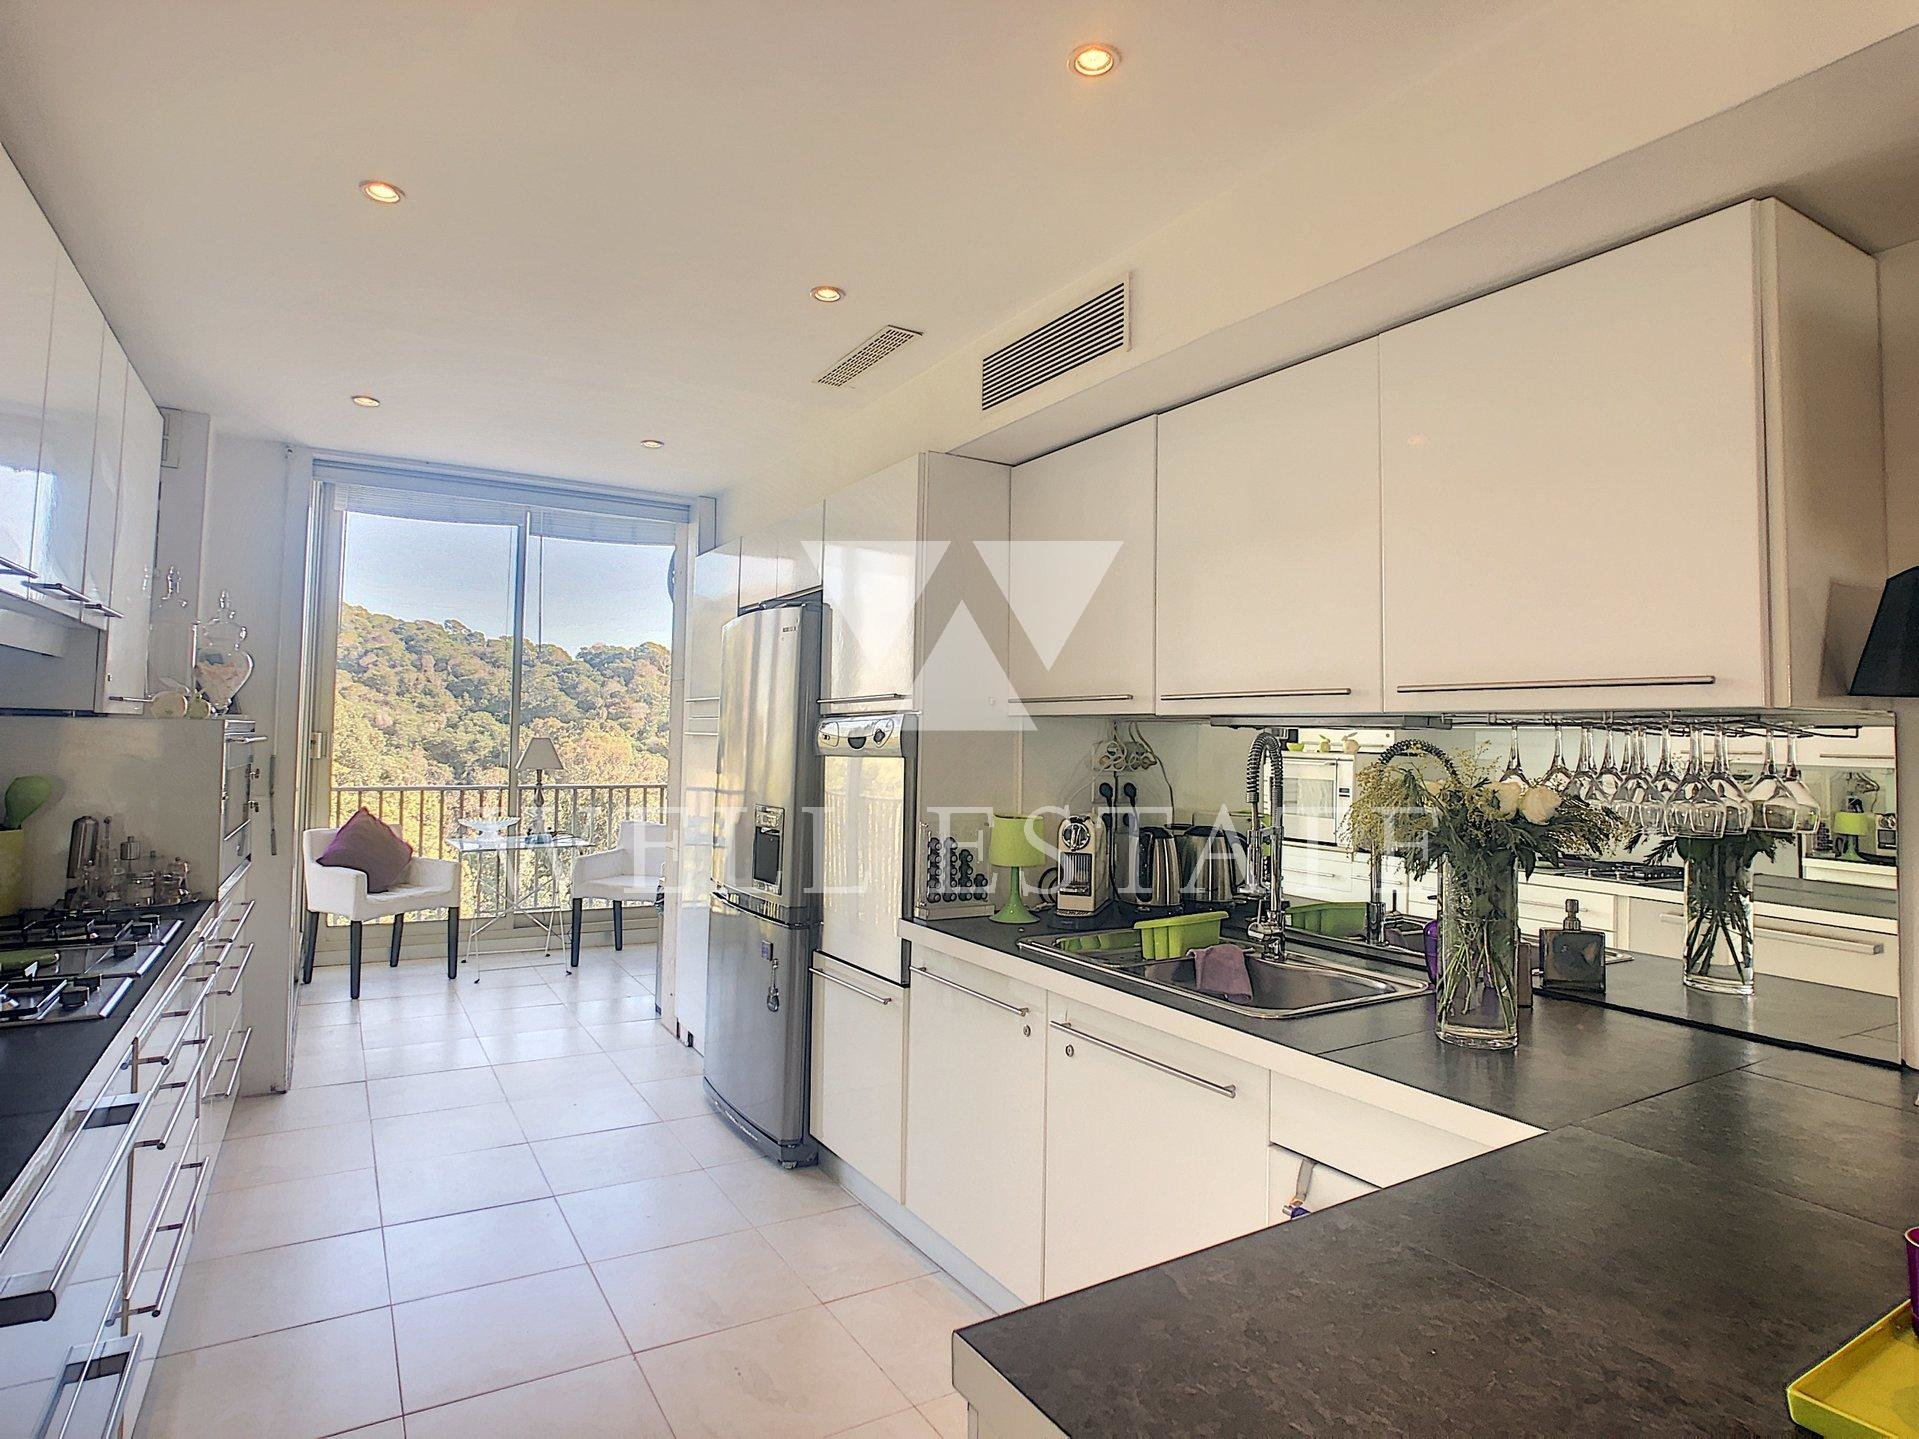 CANNES CALIFORNIE APPARTEMENT 4 PEICES 165M2 VUE MER RESIDENCE FERMEE.